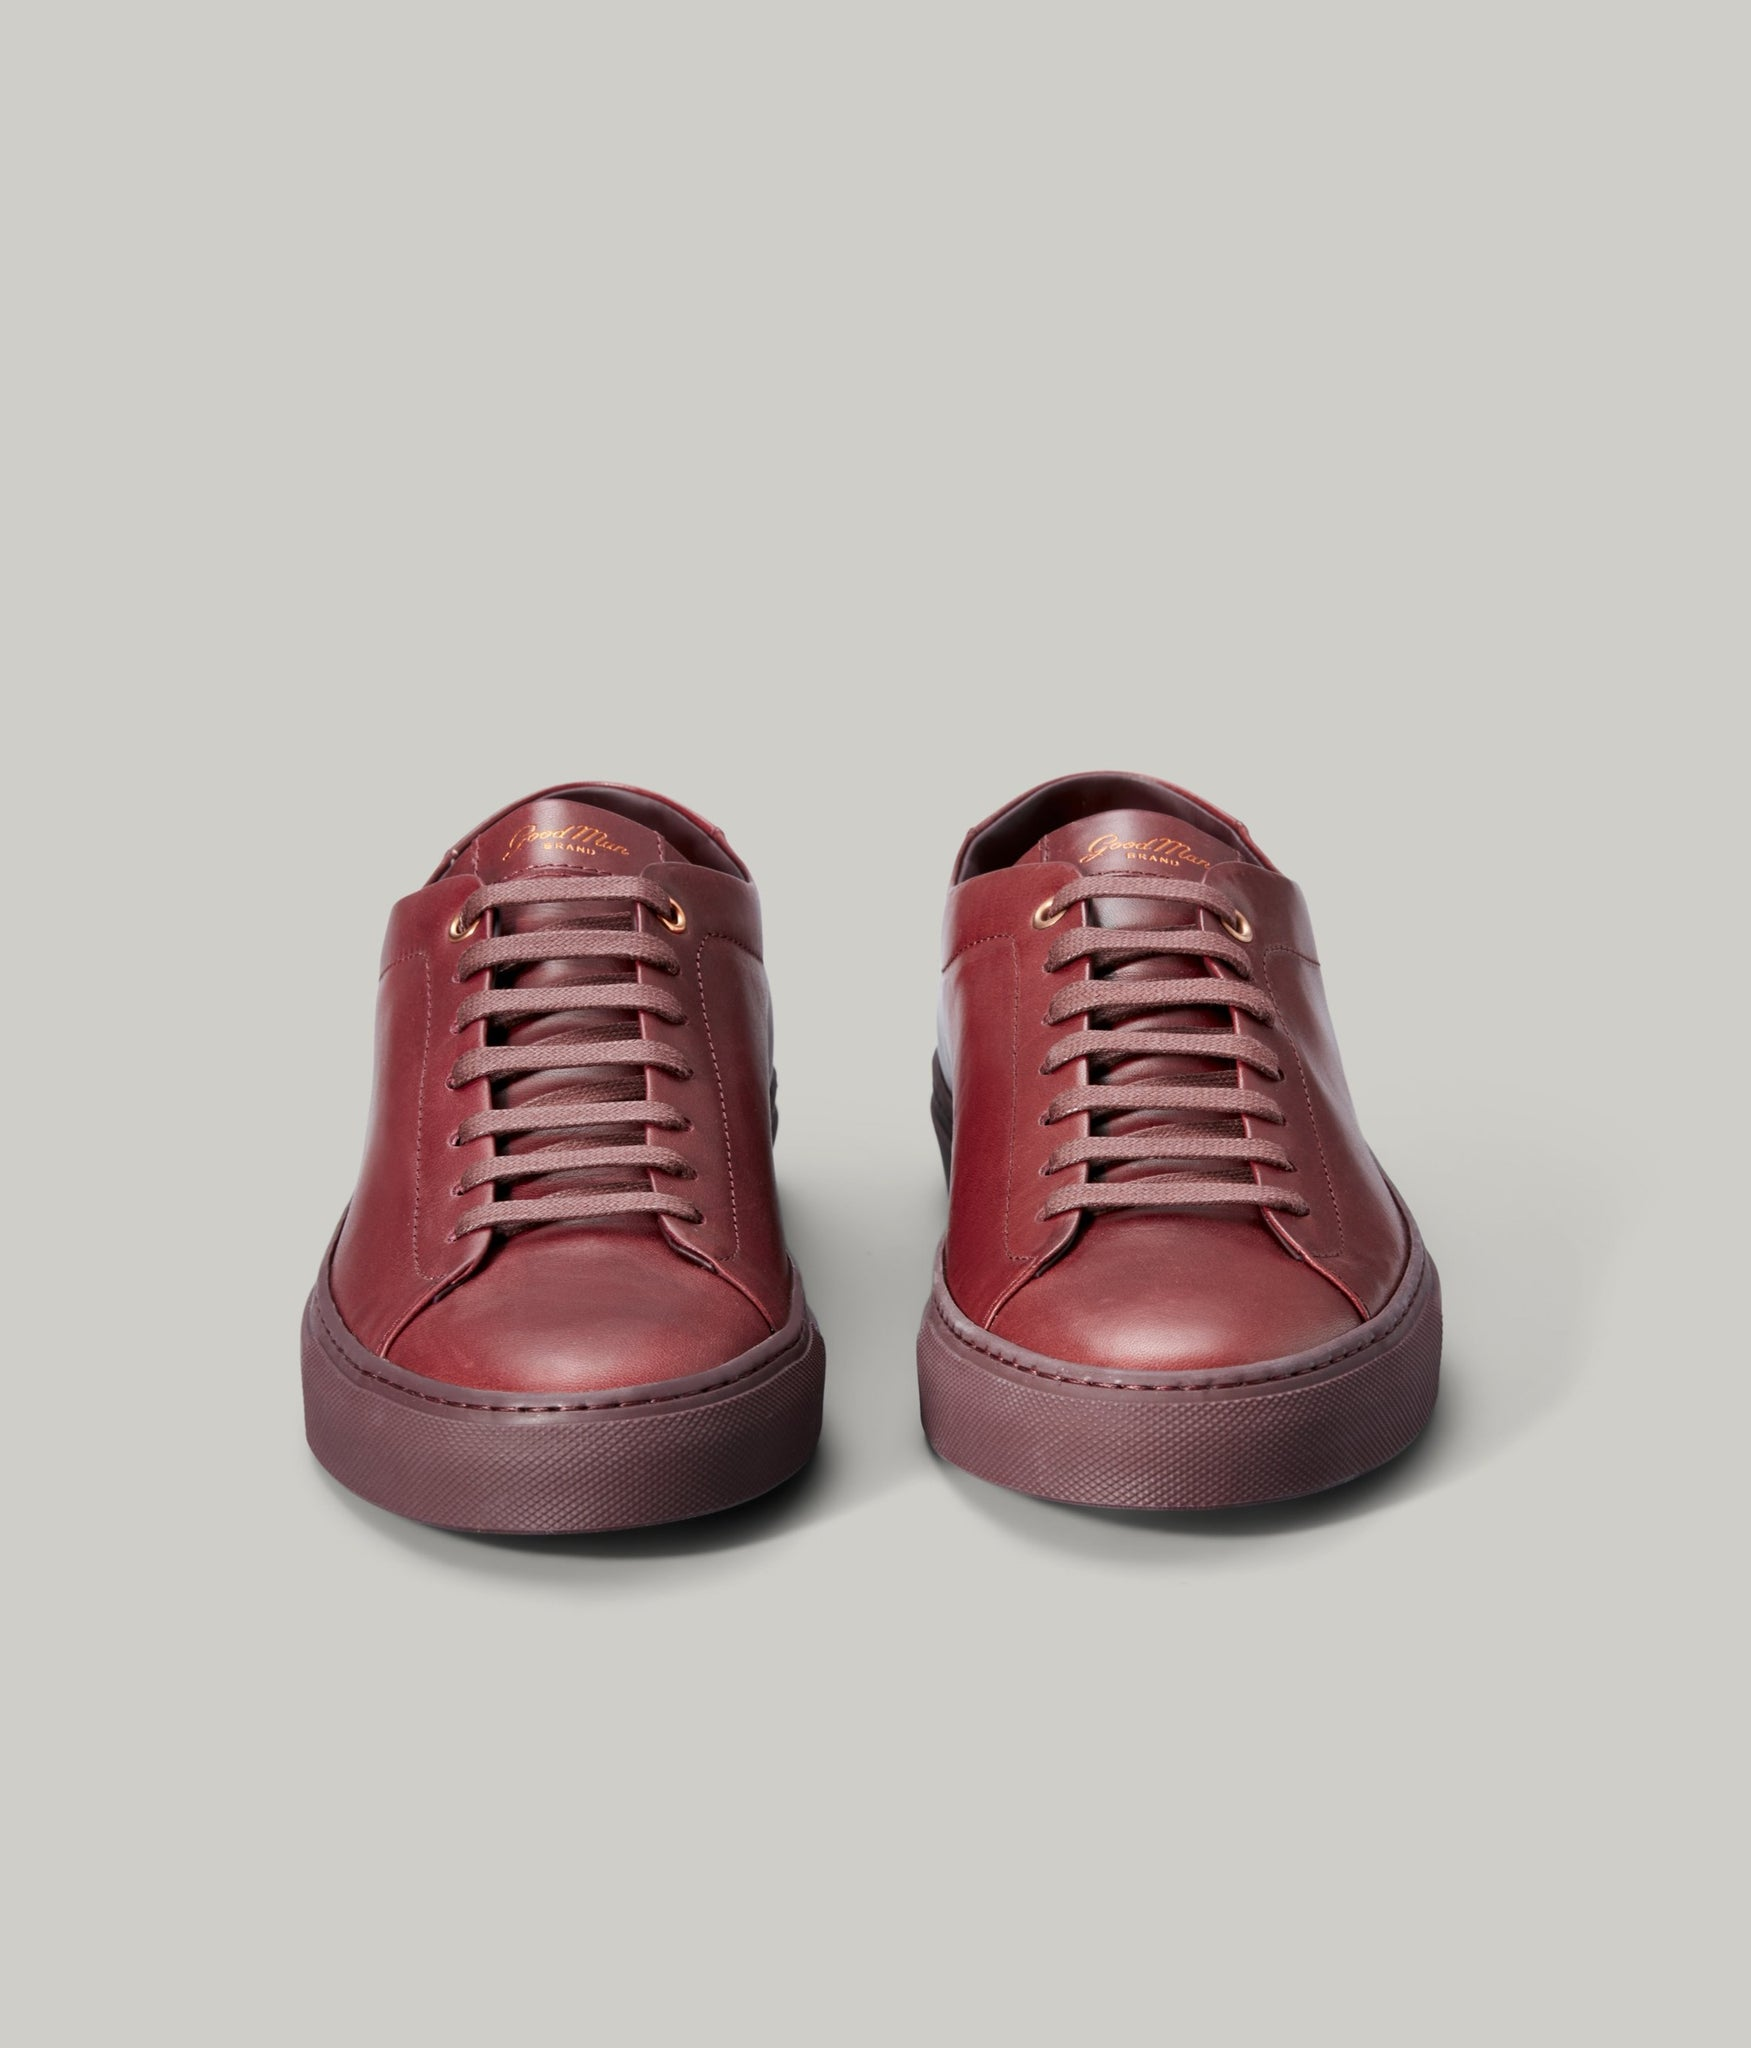 Edge Mono Lo Top Sneaker in Nappa Leather - Burgundy